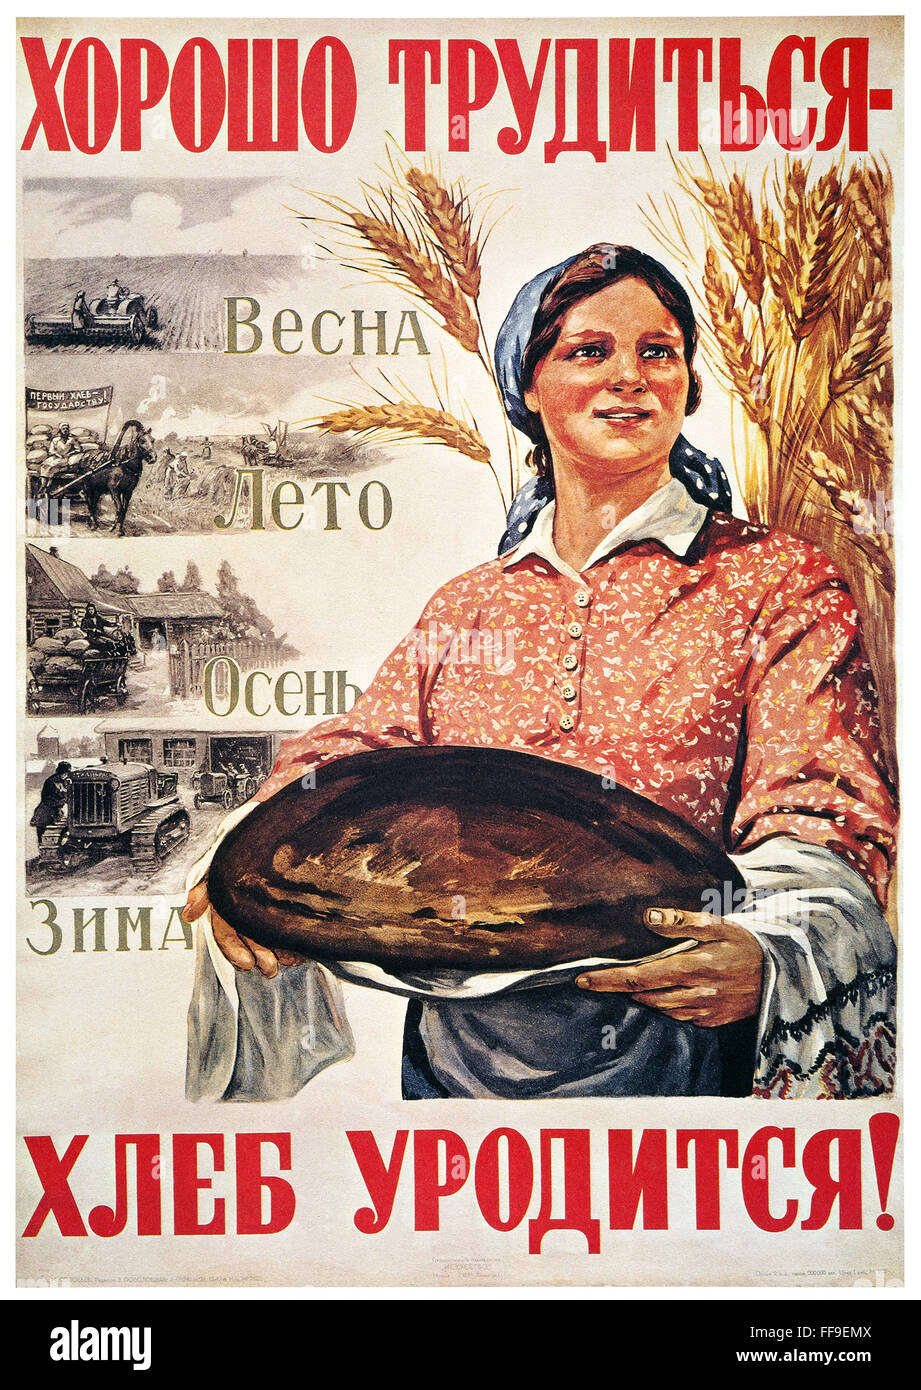 "RUSSIA: COLLECTIVE FARM. /n""Work hard during harvest time and you will be rewarded with plenty of bread!"": Russian Stock Photo"